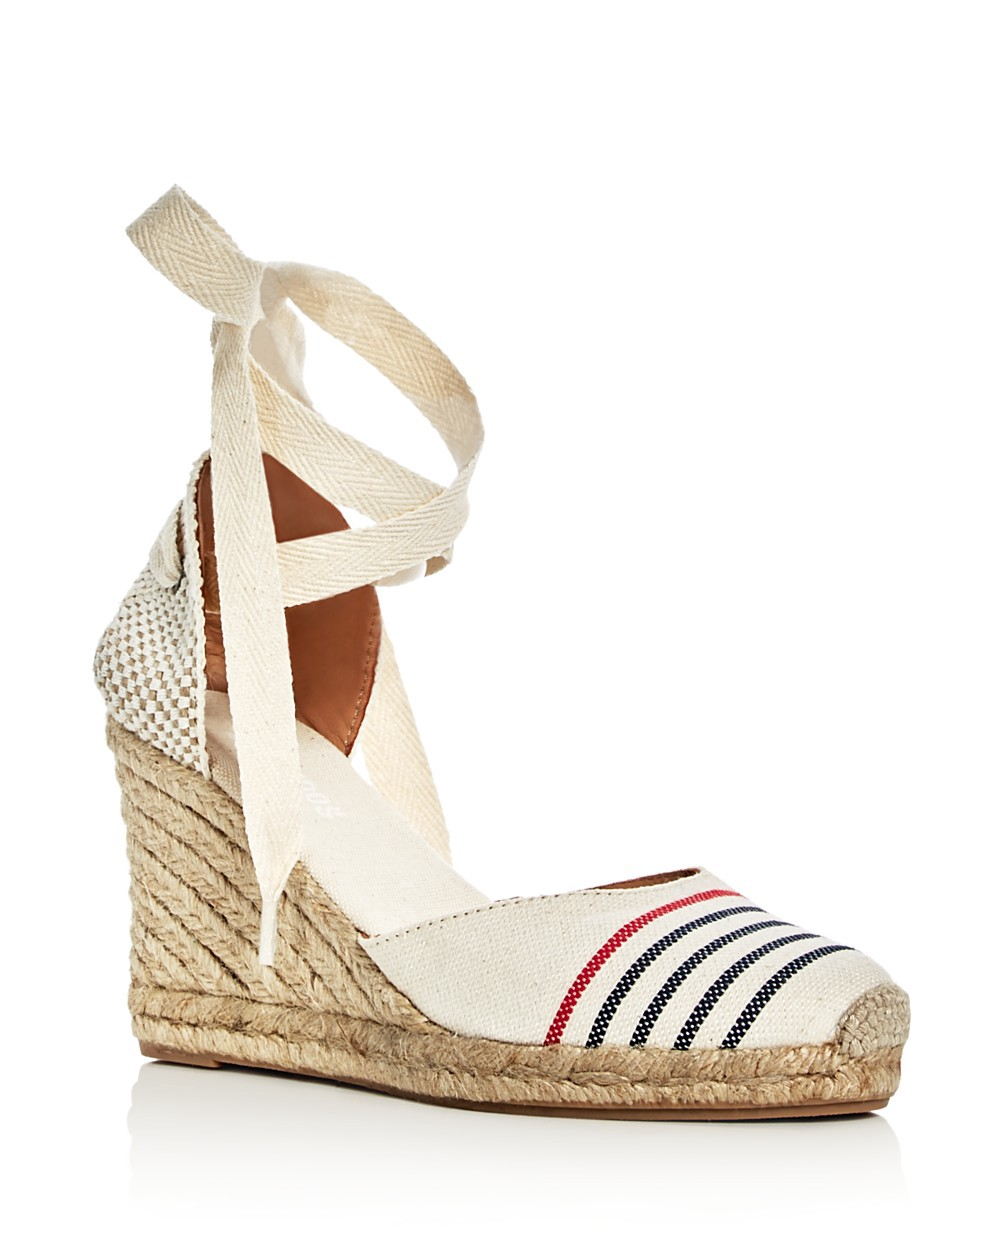 Soludos Canvases SOLUDOS WOMEN'S ANKLE TIE ESPADRILLE WEDGE SANDALS